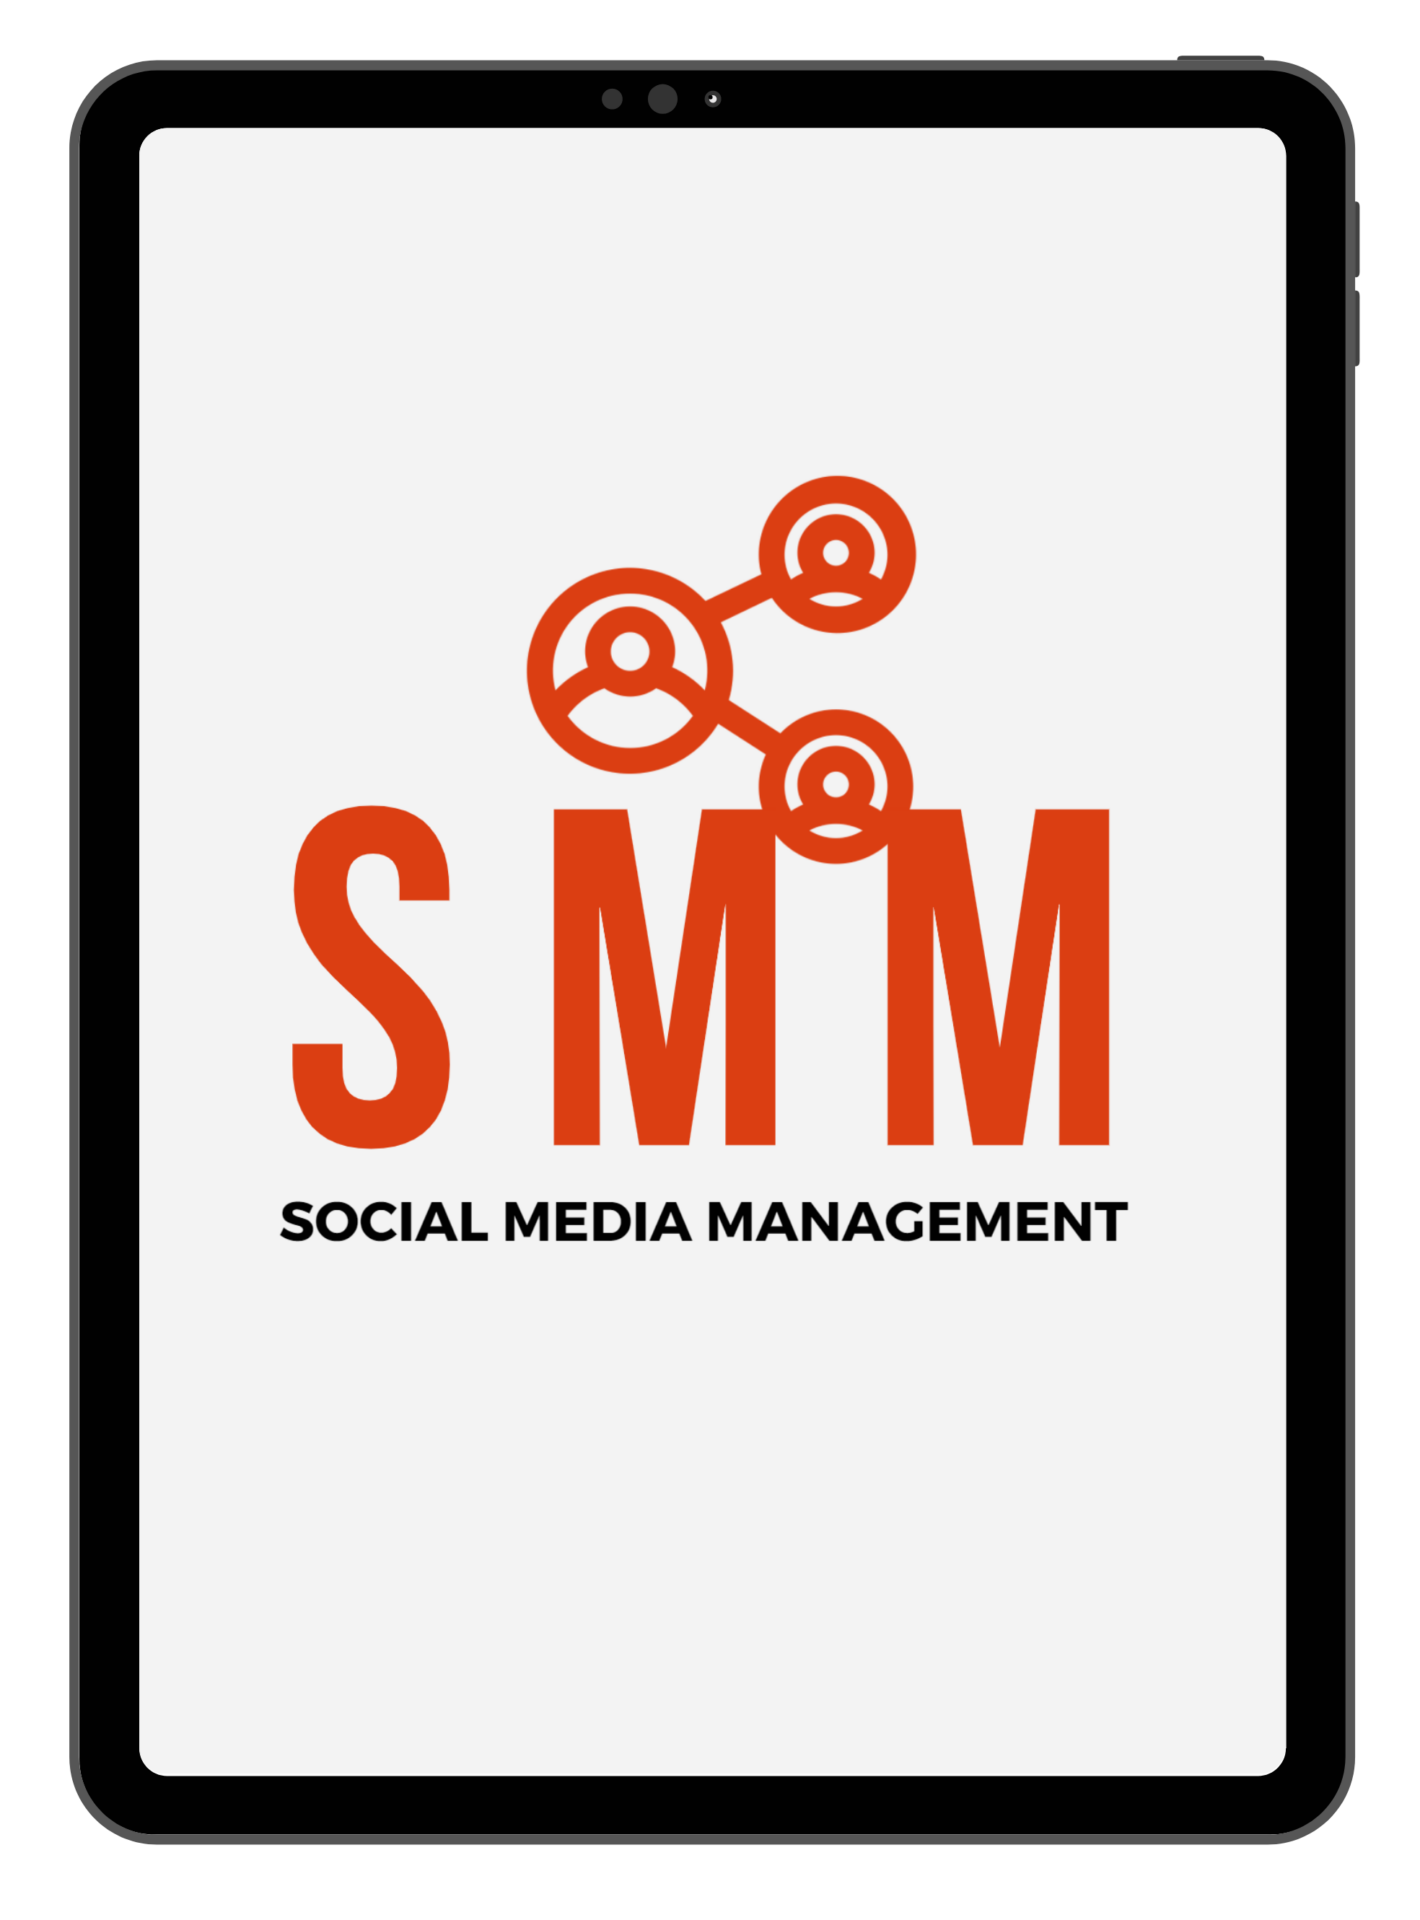 ipad with orange text inside SMM social media management and a symbol of connection